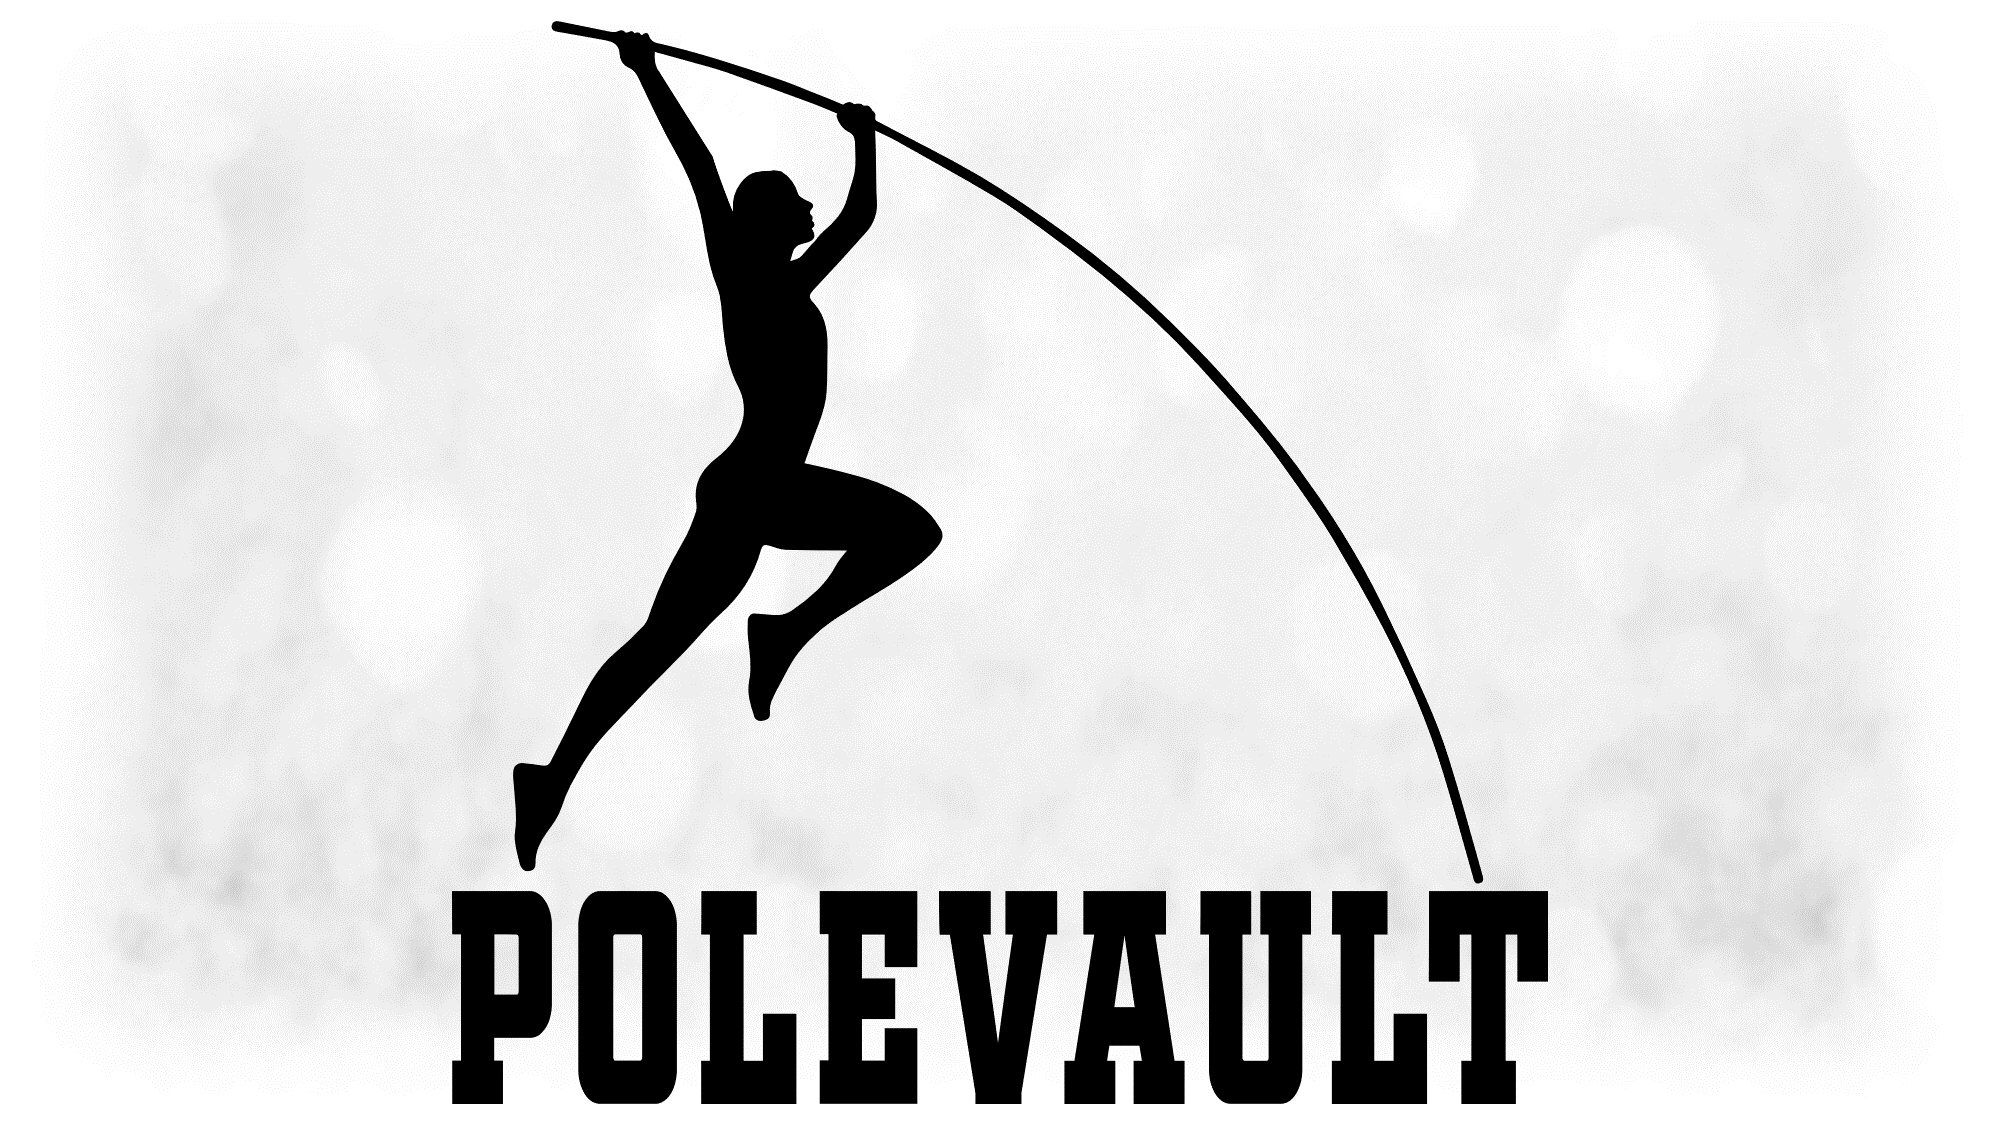 Sports Clipart Large Black And White Track Field Words Etsy In 2020 Track And Field Pole Vault Black And White